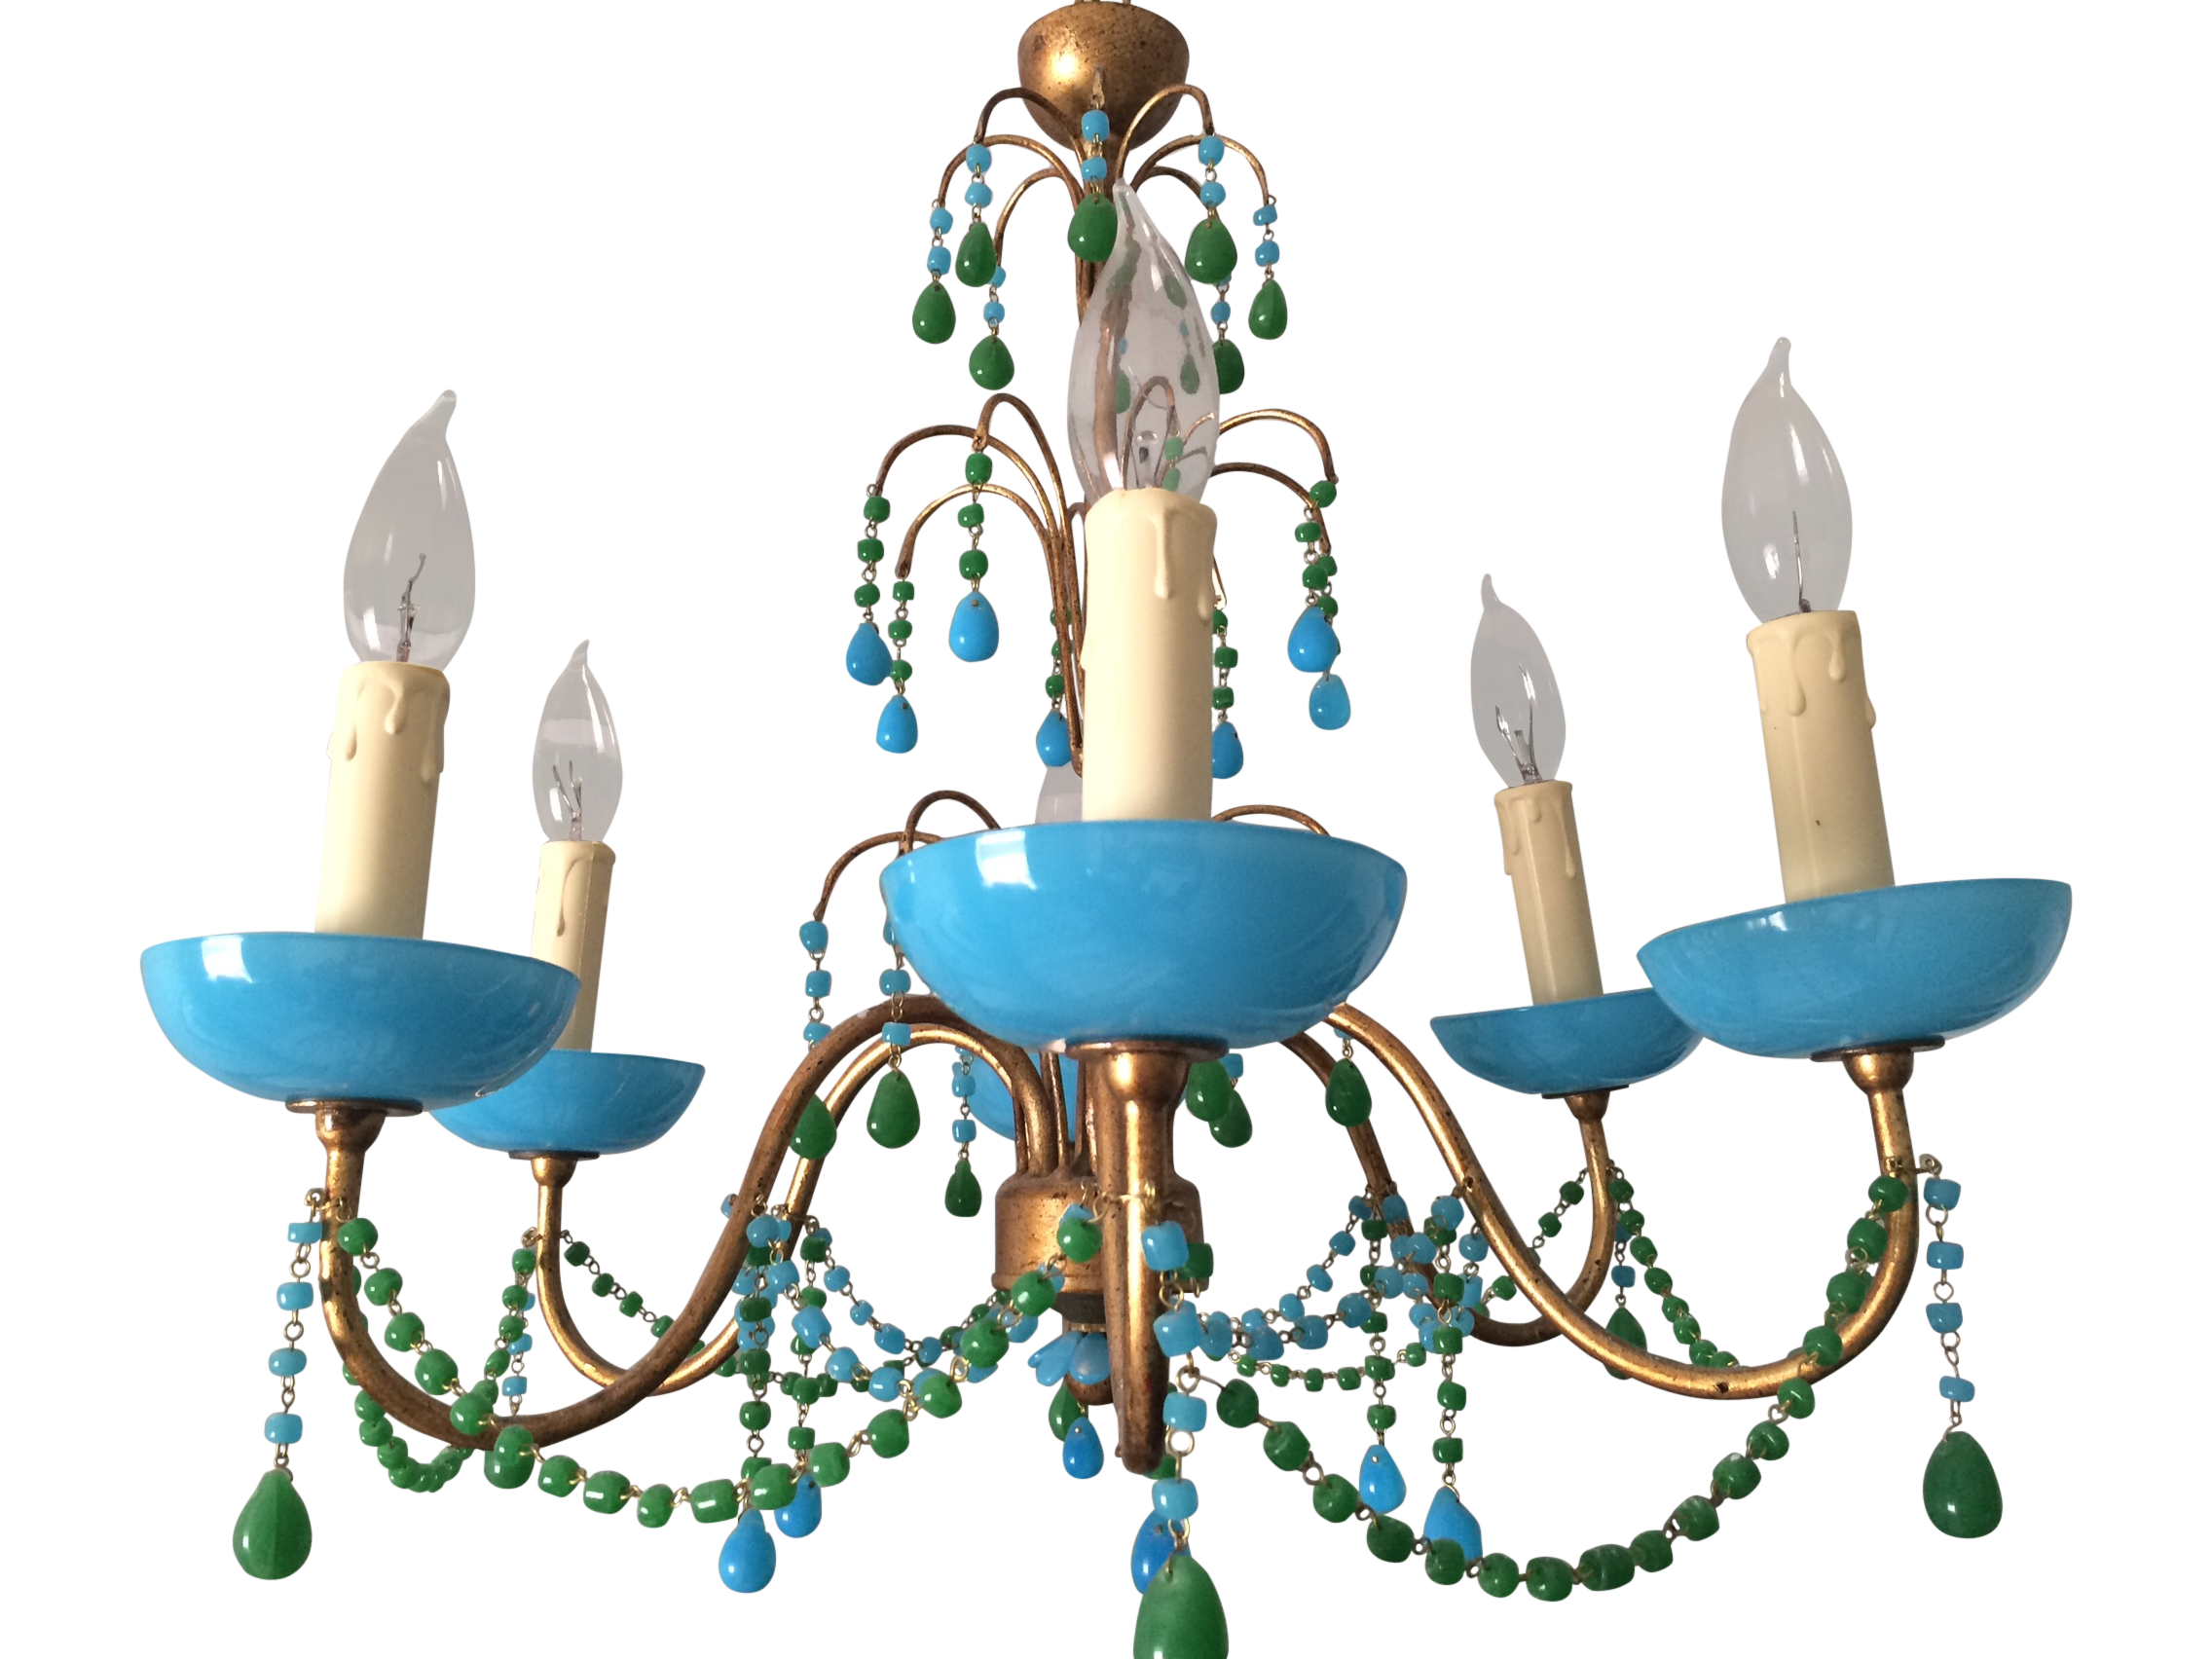 chandelier bedding accessories decor green item chandeliers home product vetro lighting bella